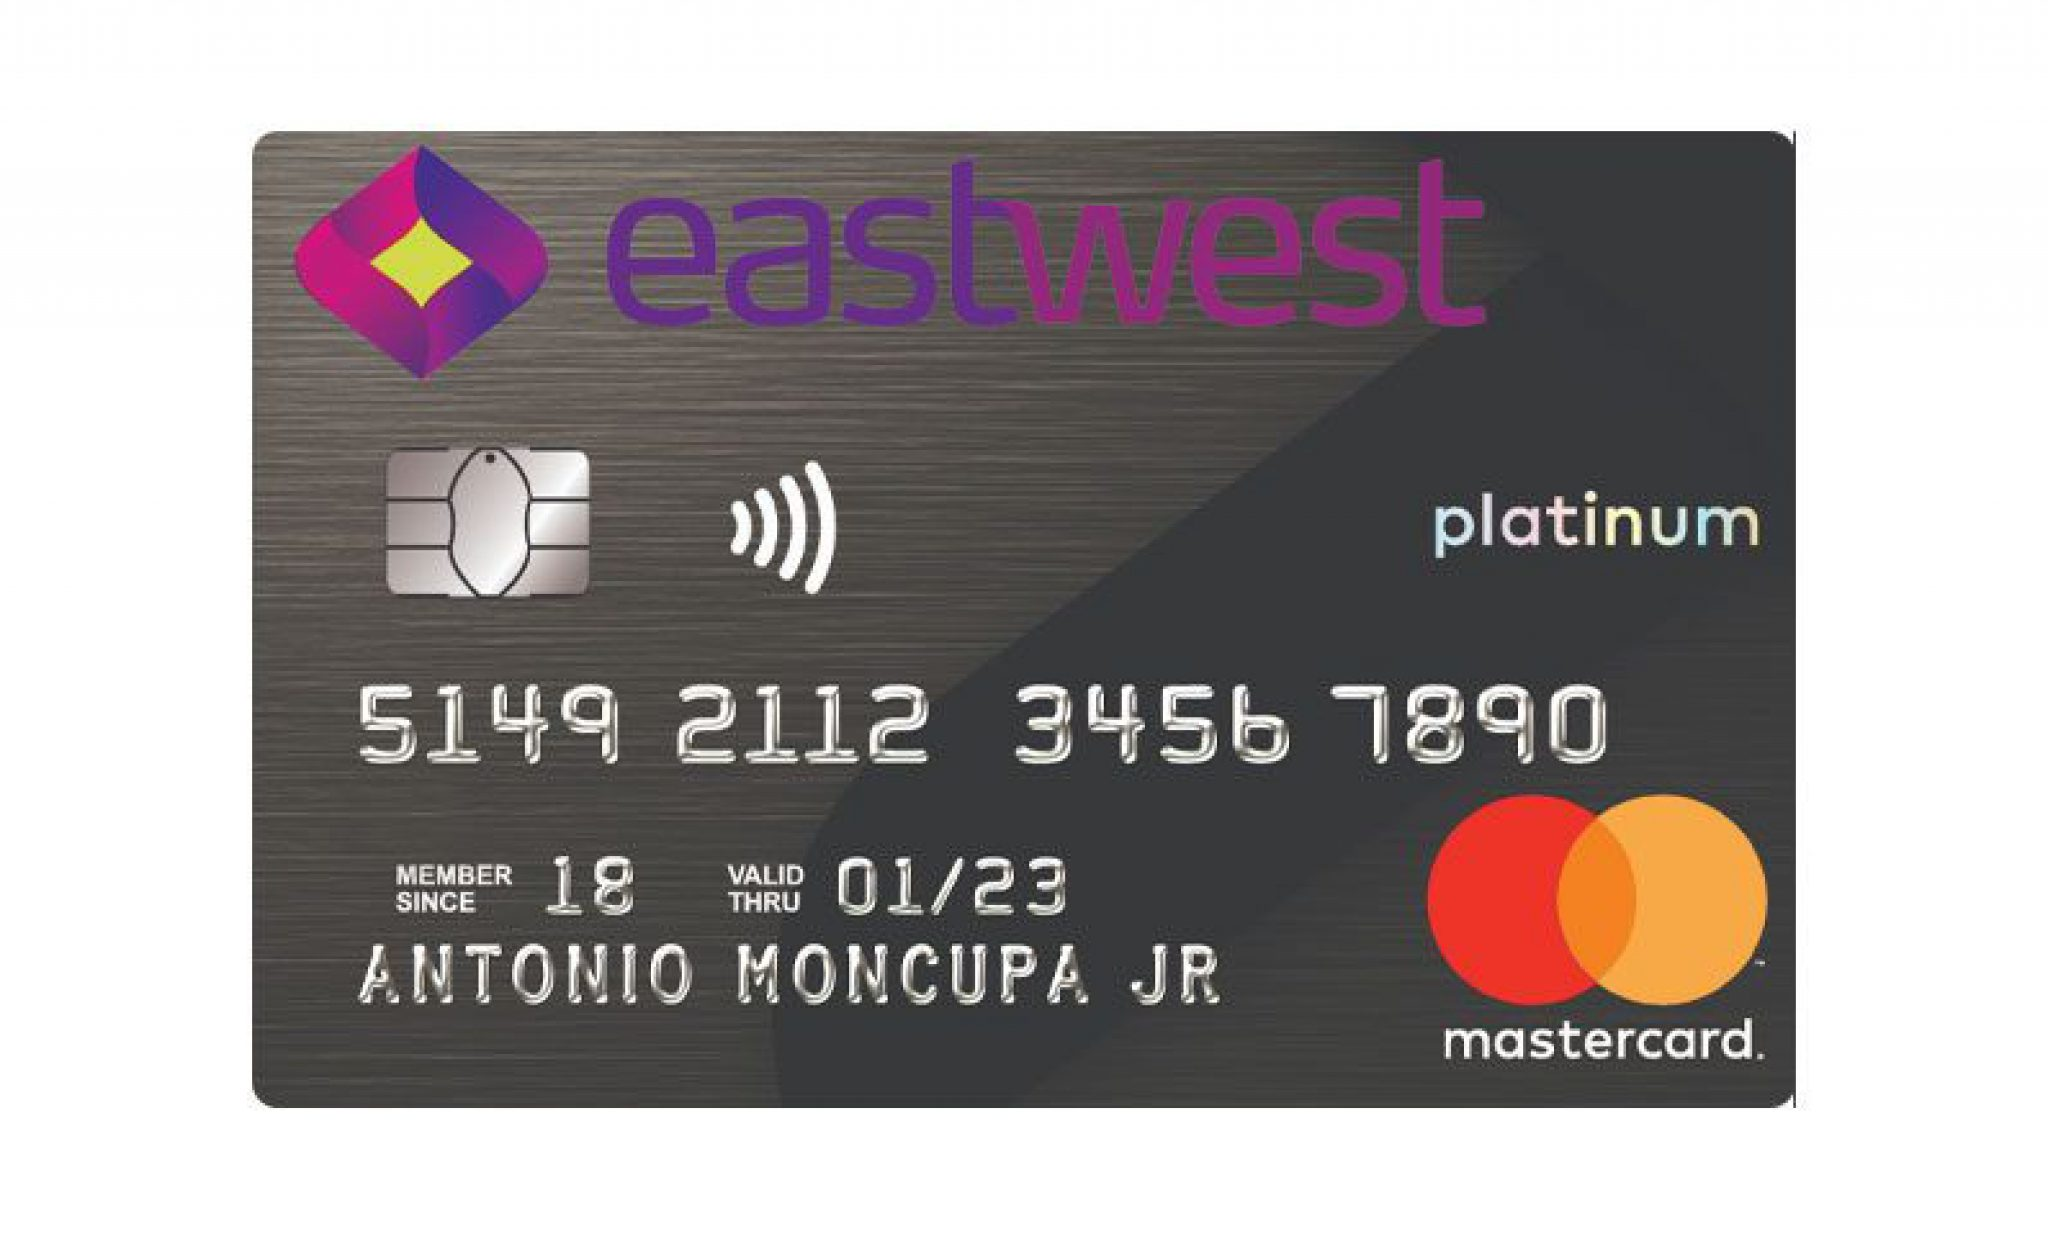 Eastwest Platinum Mastercard